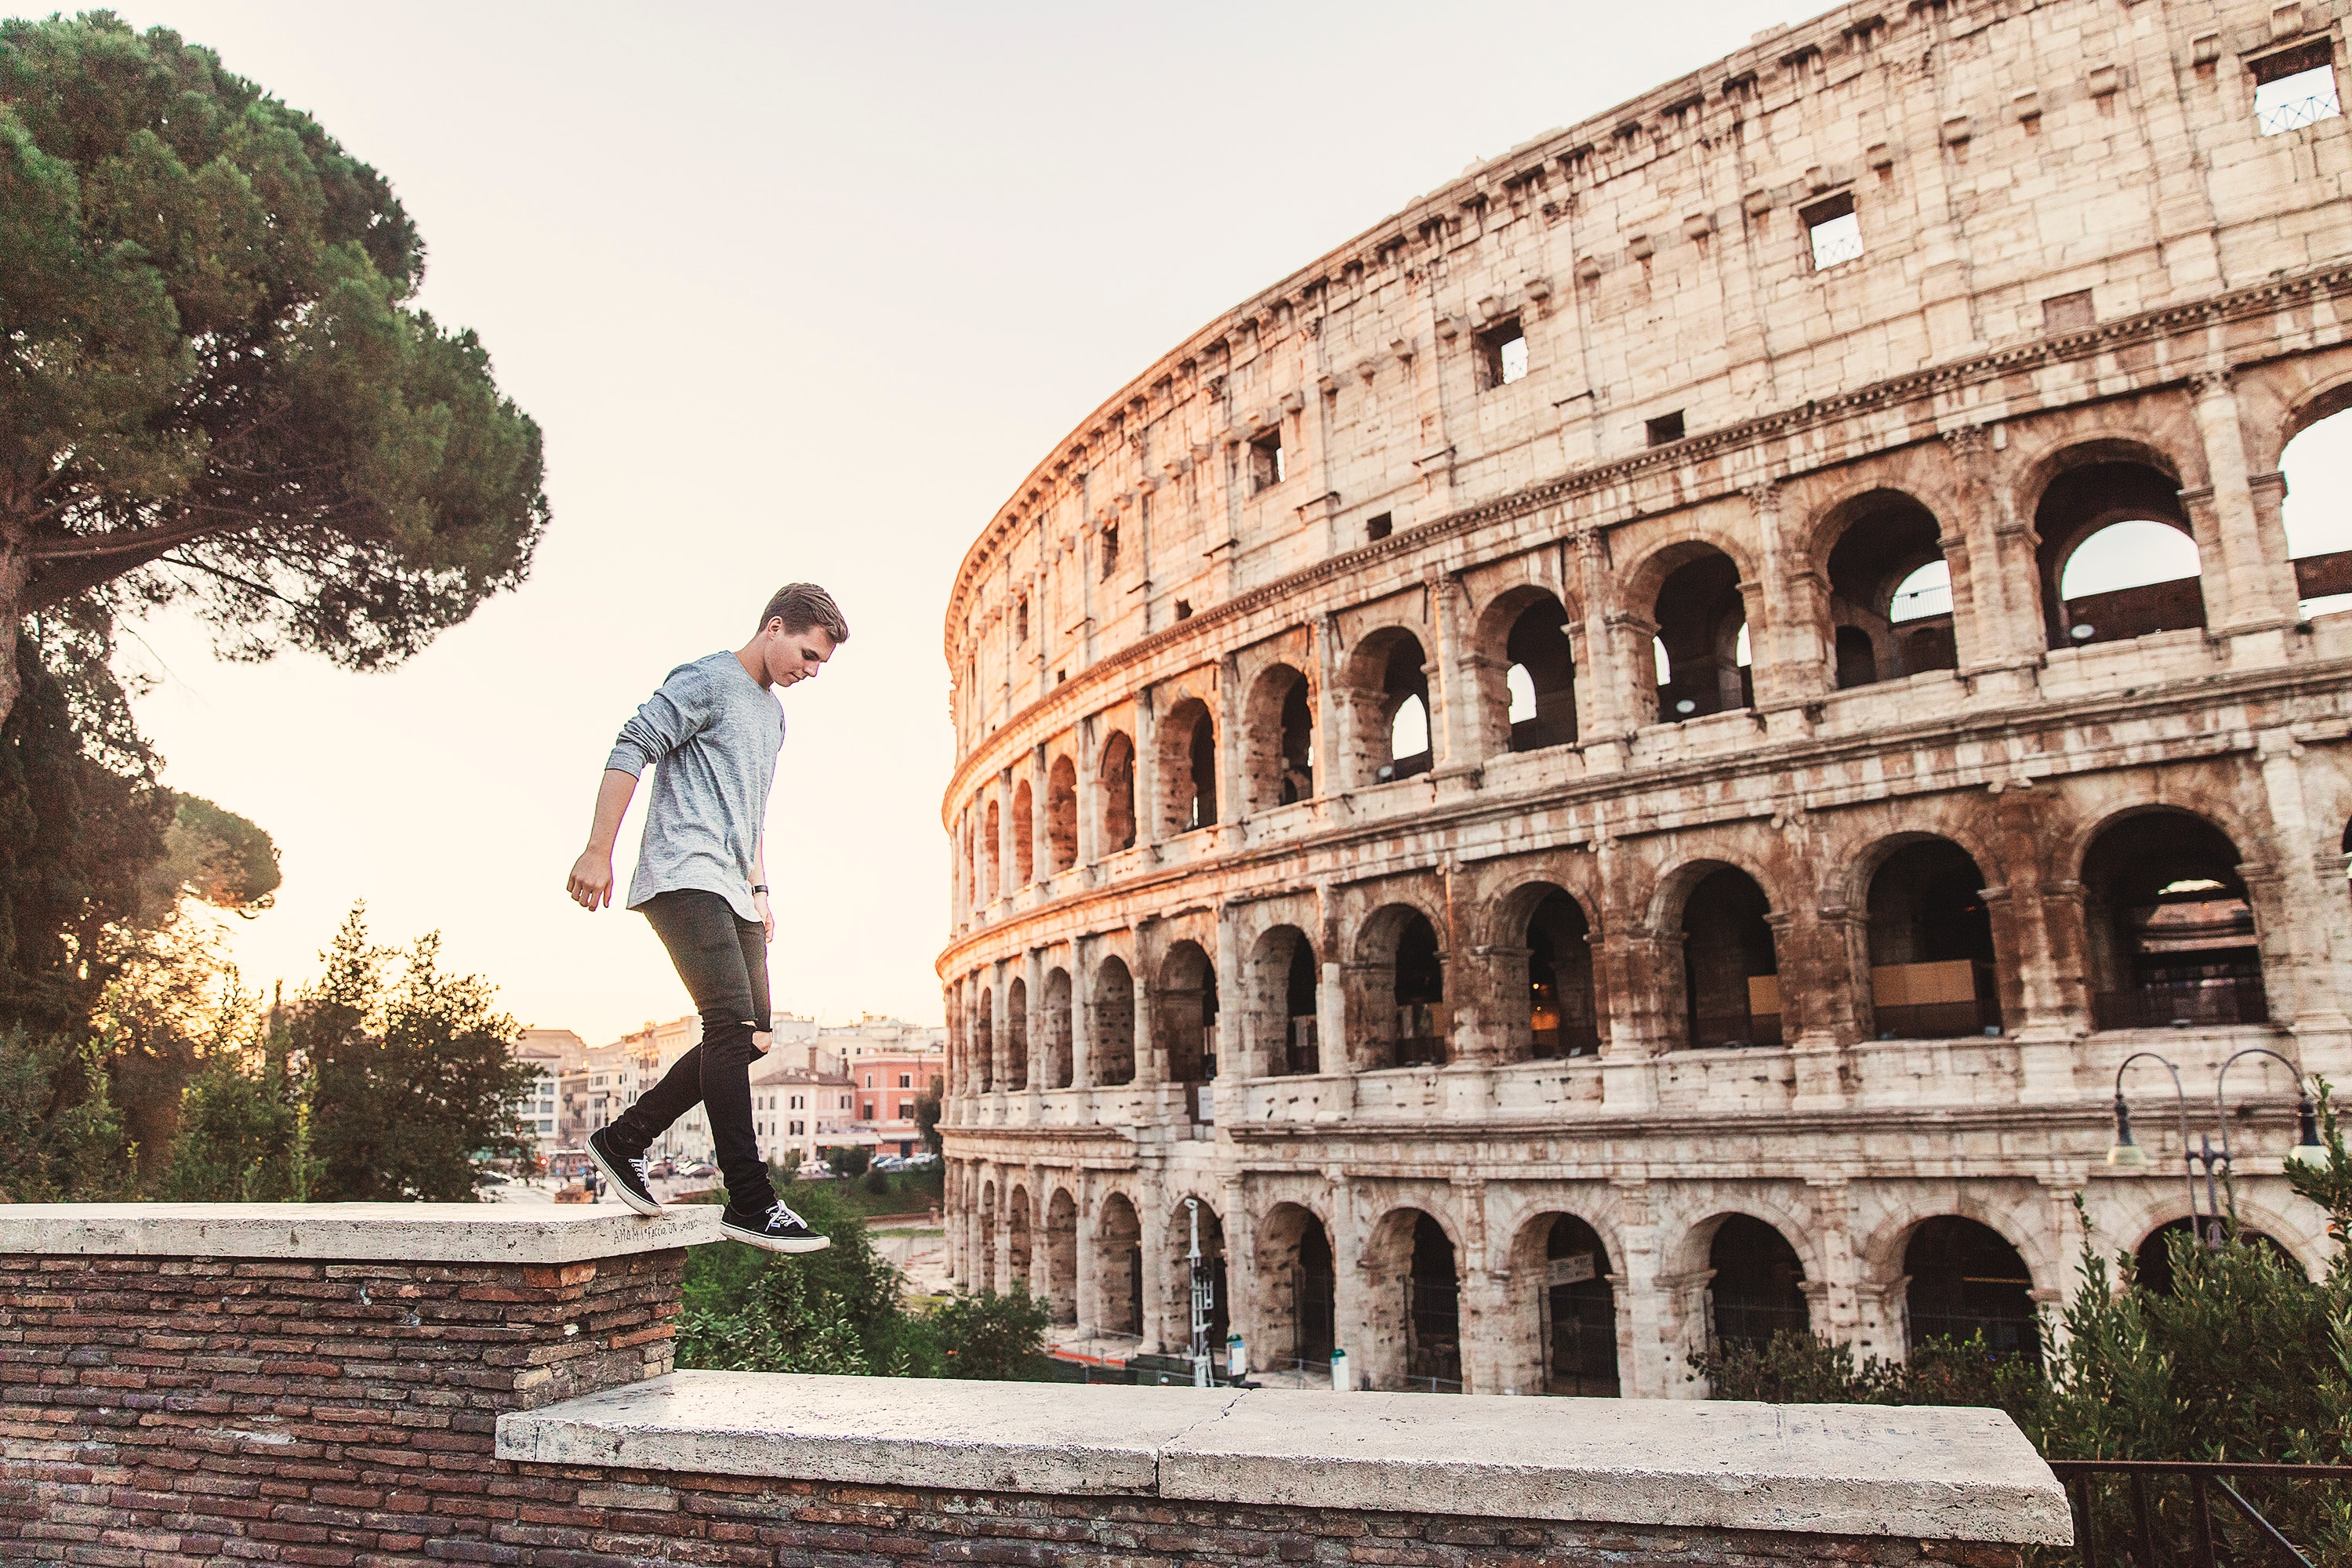 A picture of a man, walking next to the Colosseum, Italy